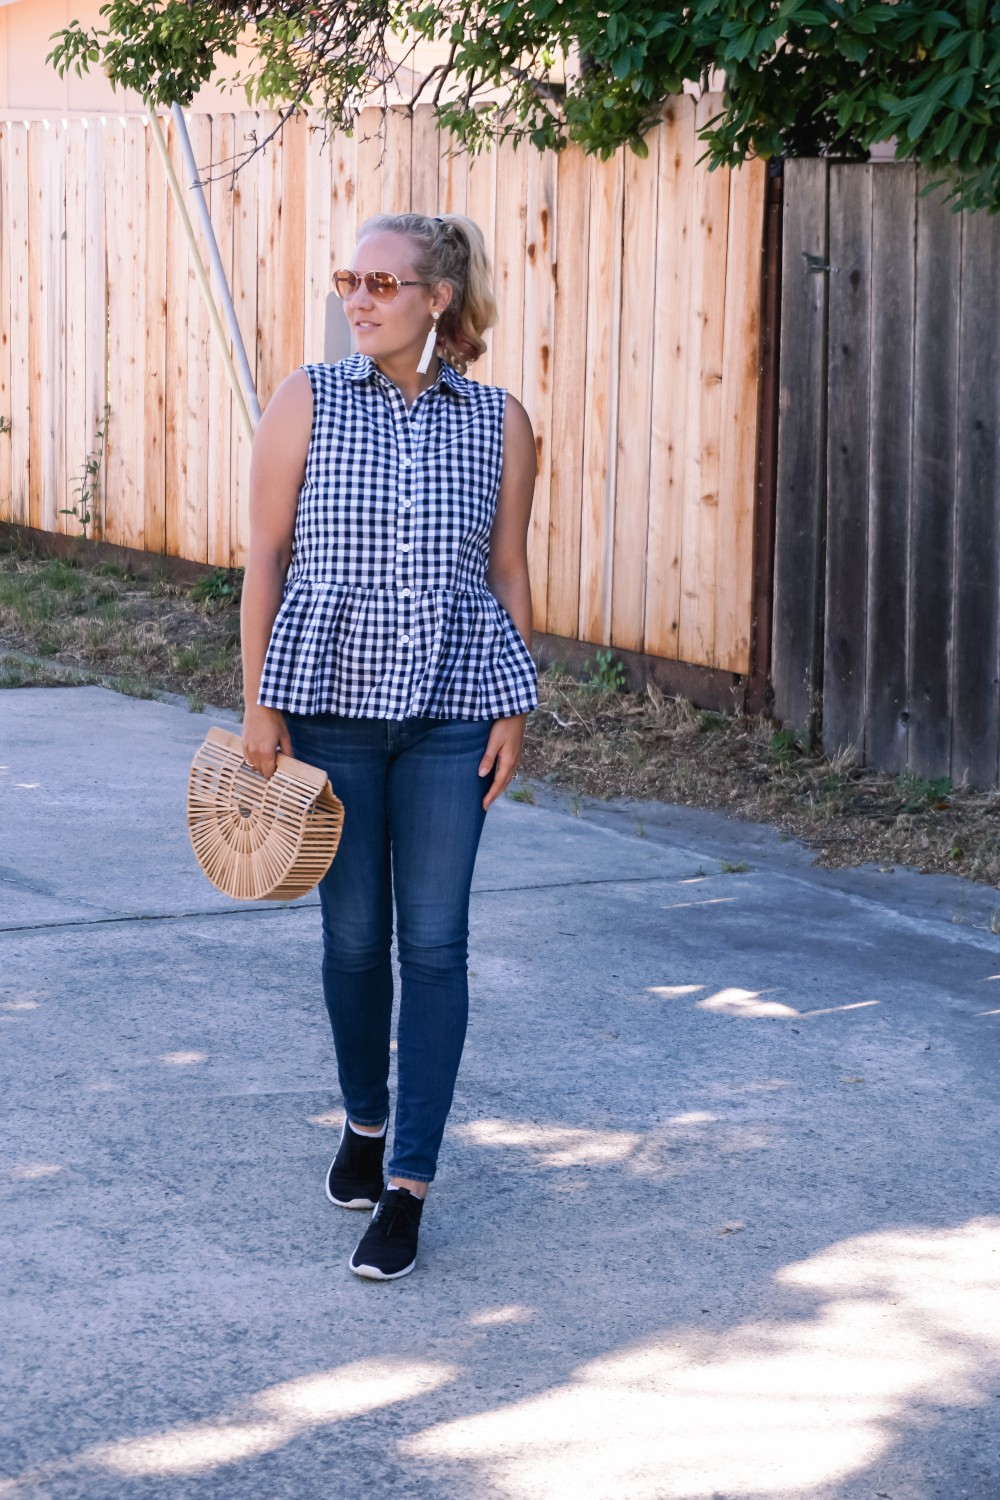 Blogger Off Duty-Daily Outfit Series-Have Need Want-Romwe Gingham Bow Top-Gingham Top-Summer Style-Mom Style-Stylish Moms-Outfit Inspiration 5